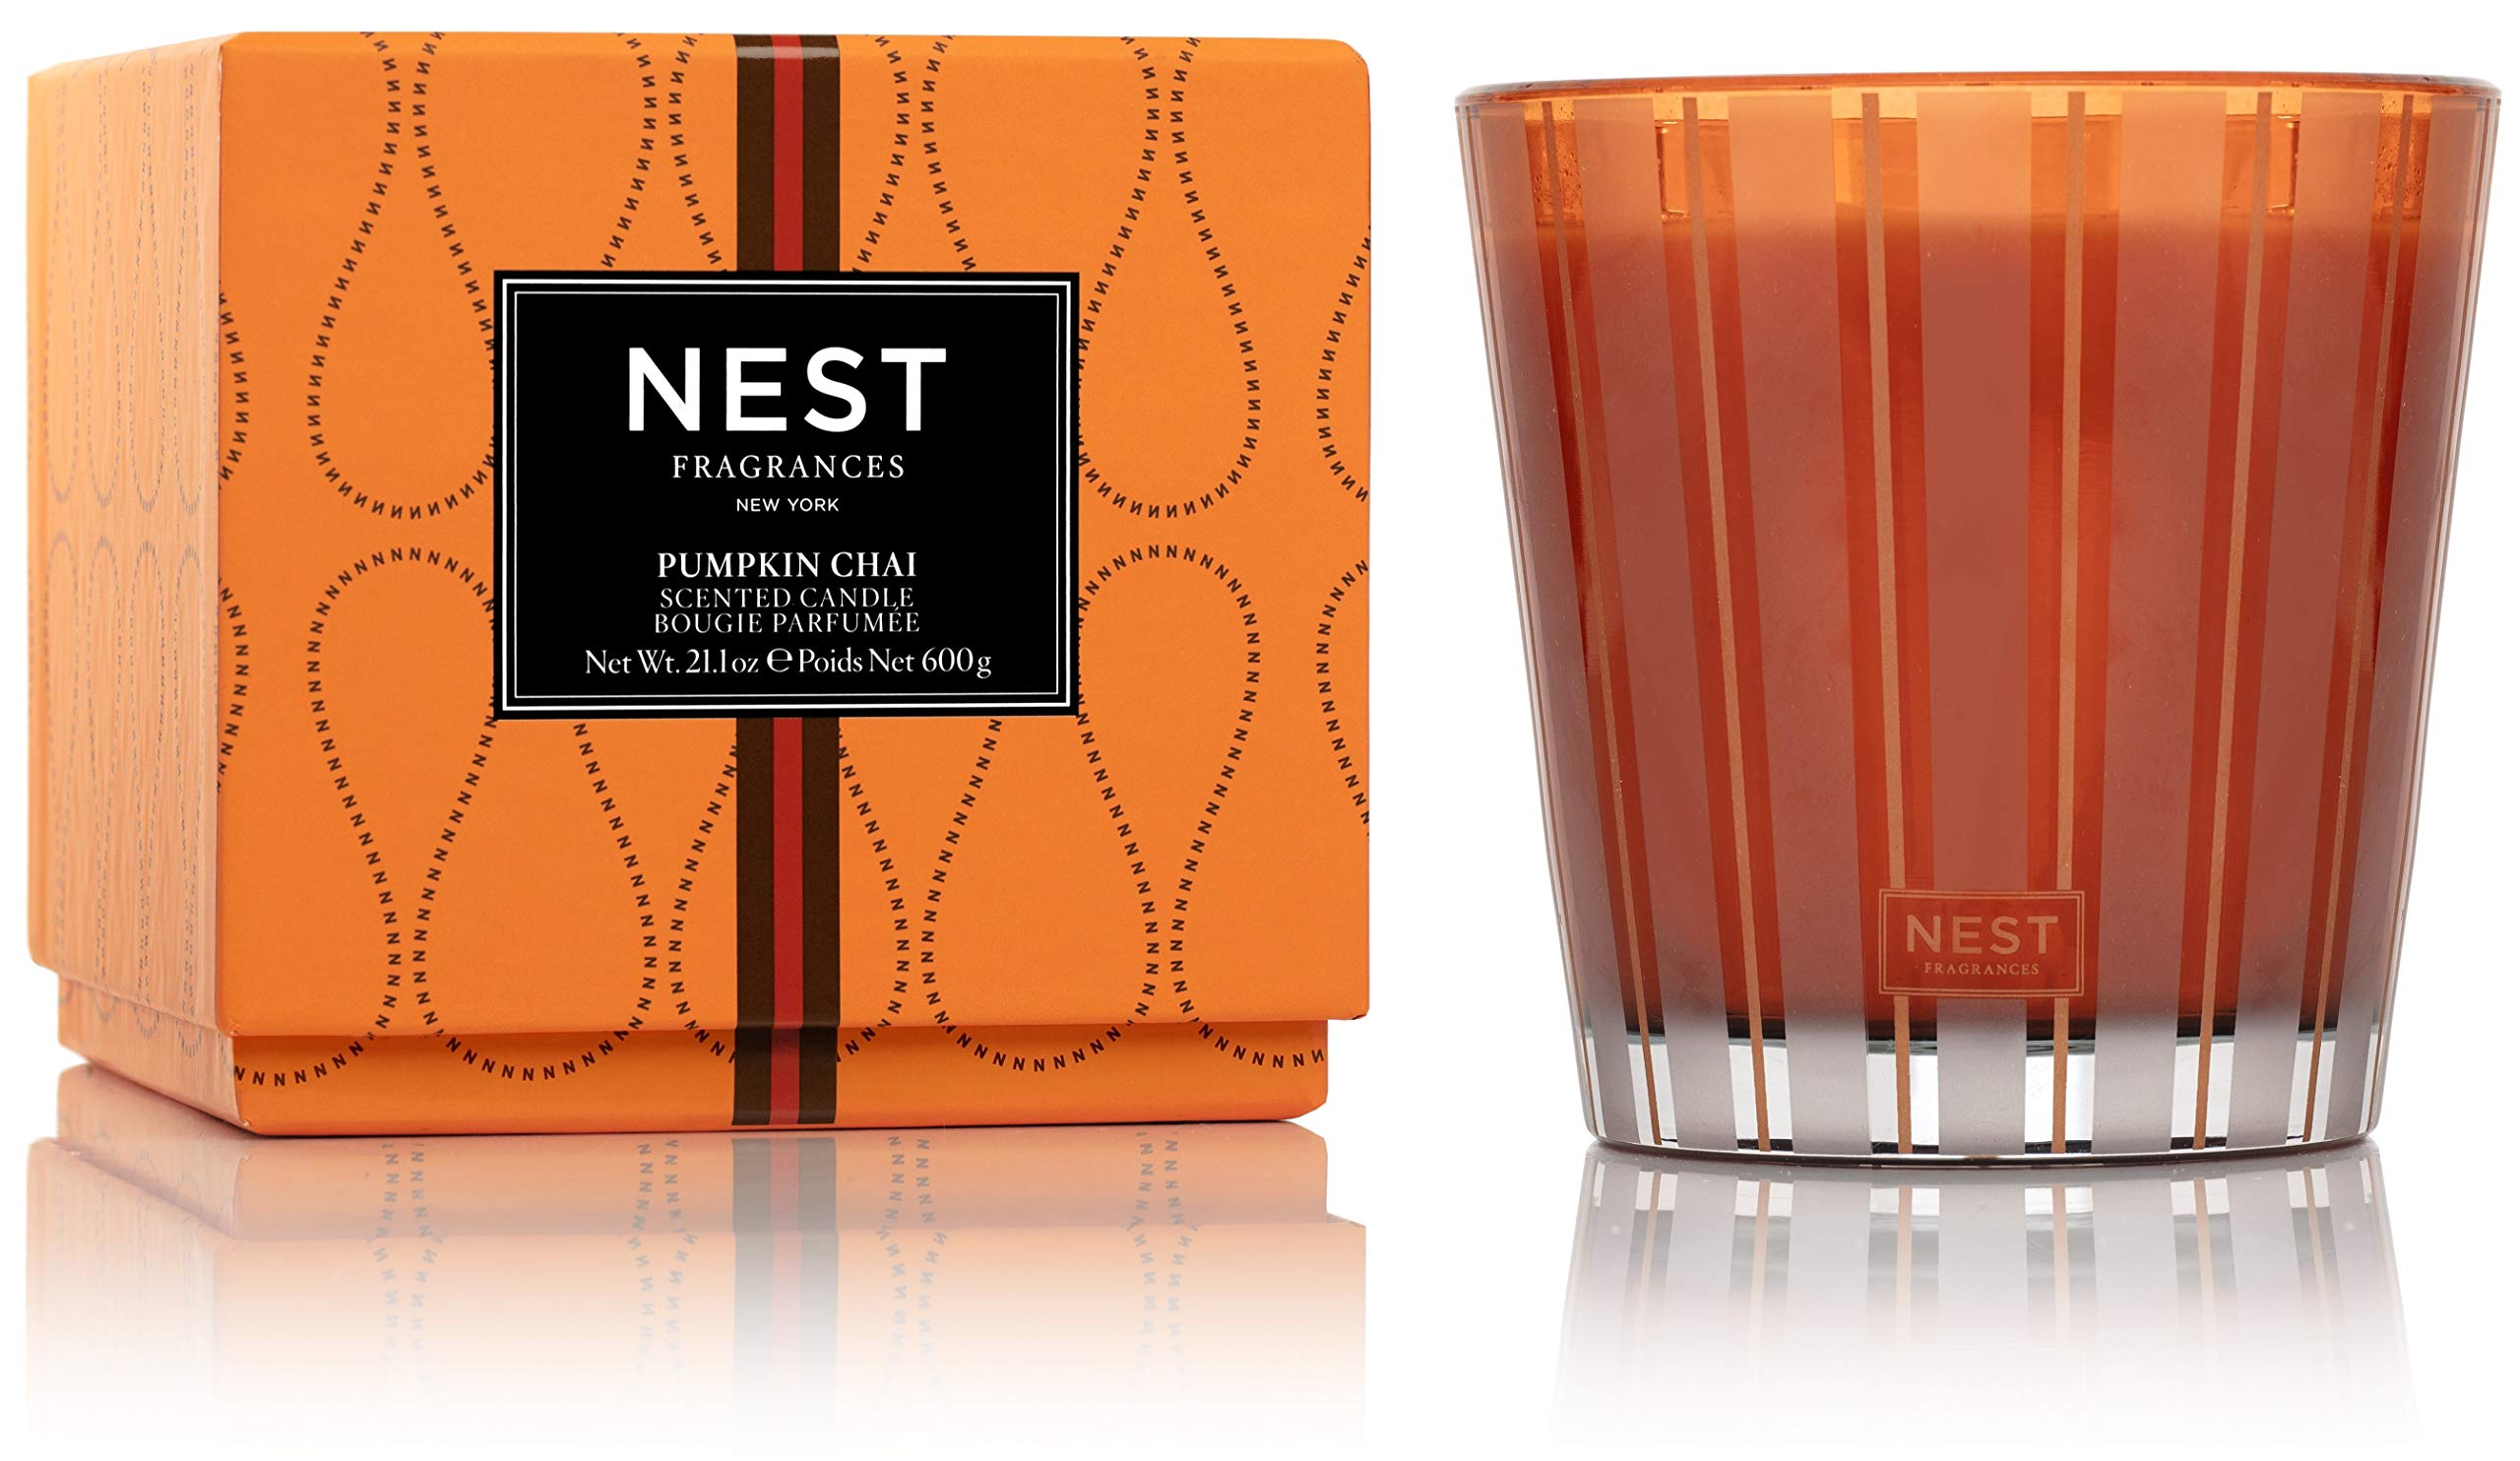 NEST Fragrances 3-Wick Candle- Pumpkin Chai, 21.2 oz by NEST Fragrances